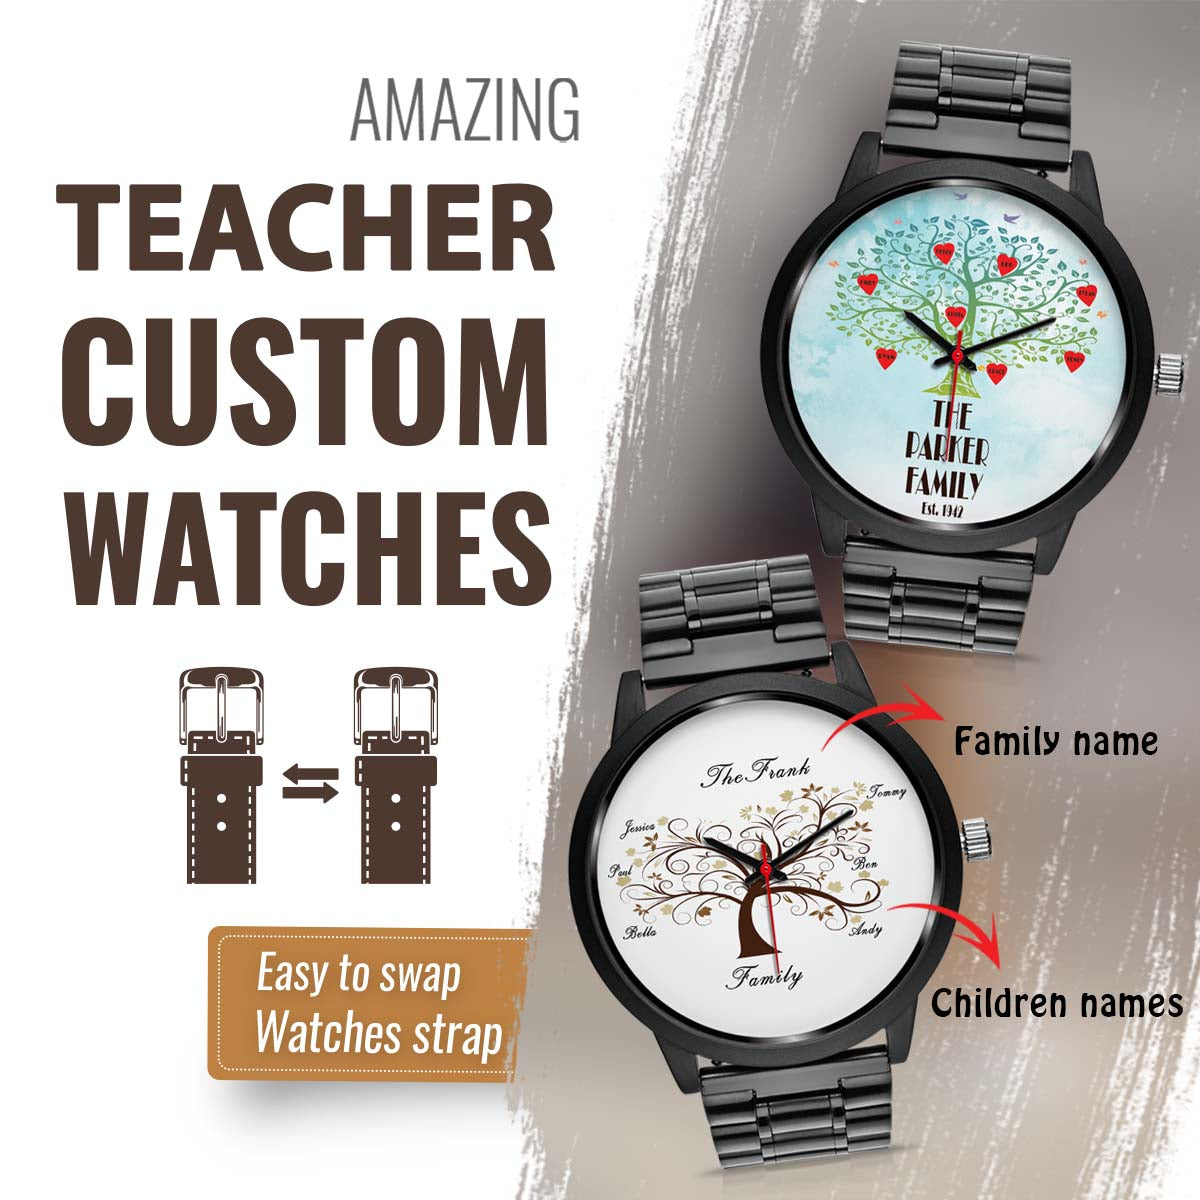 PERSONALIZED WATCH - PUT YOUR OWN FAMILY TREE ON YOUR WATCH